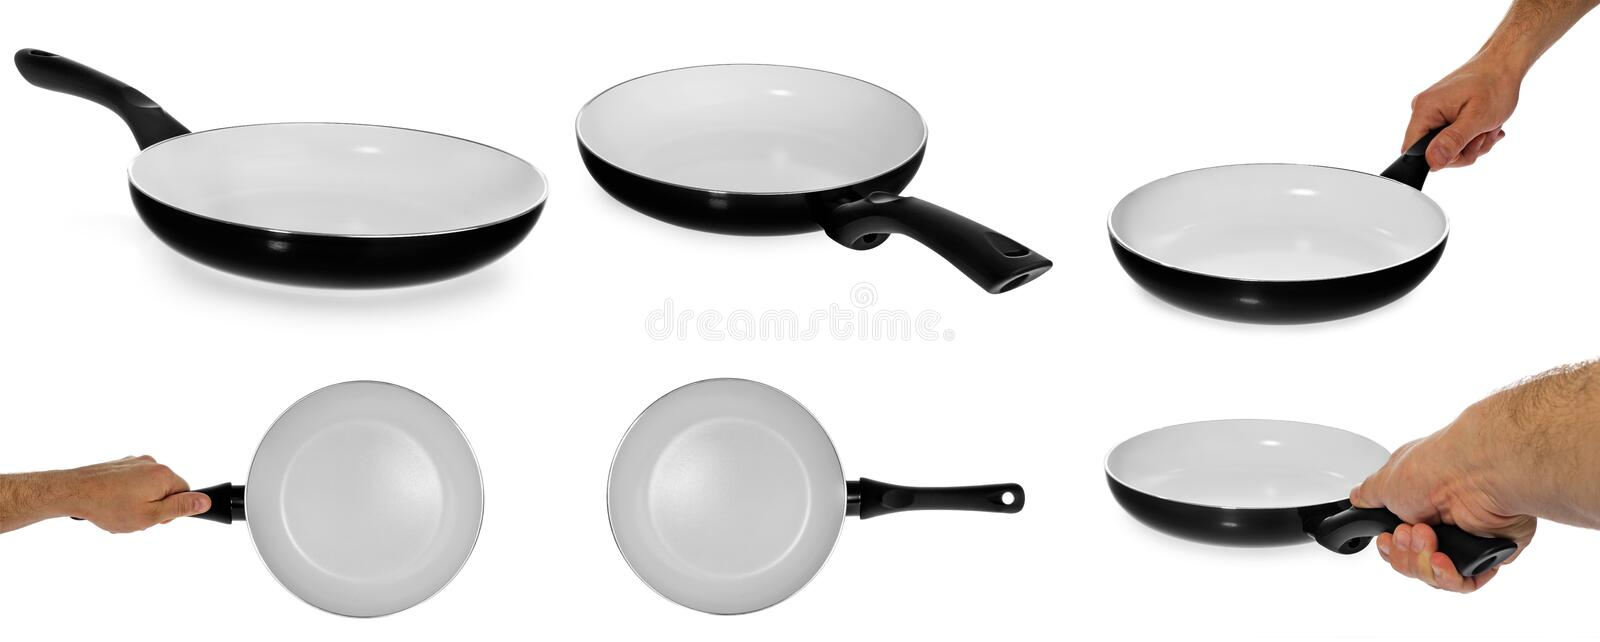 Kitchen frying pan with healthy, non-stick, ceramic, holding it royalty free stock images